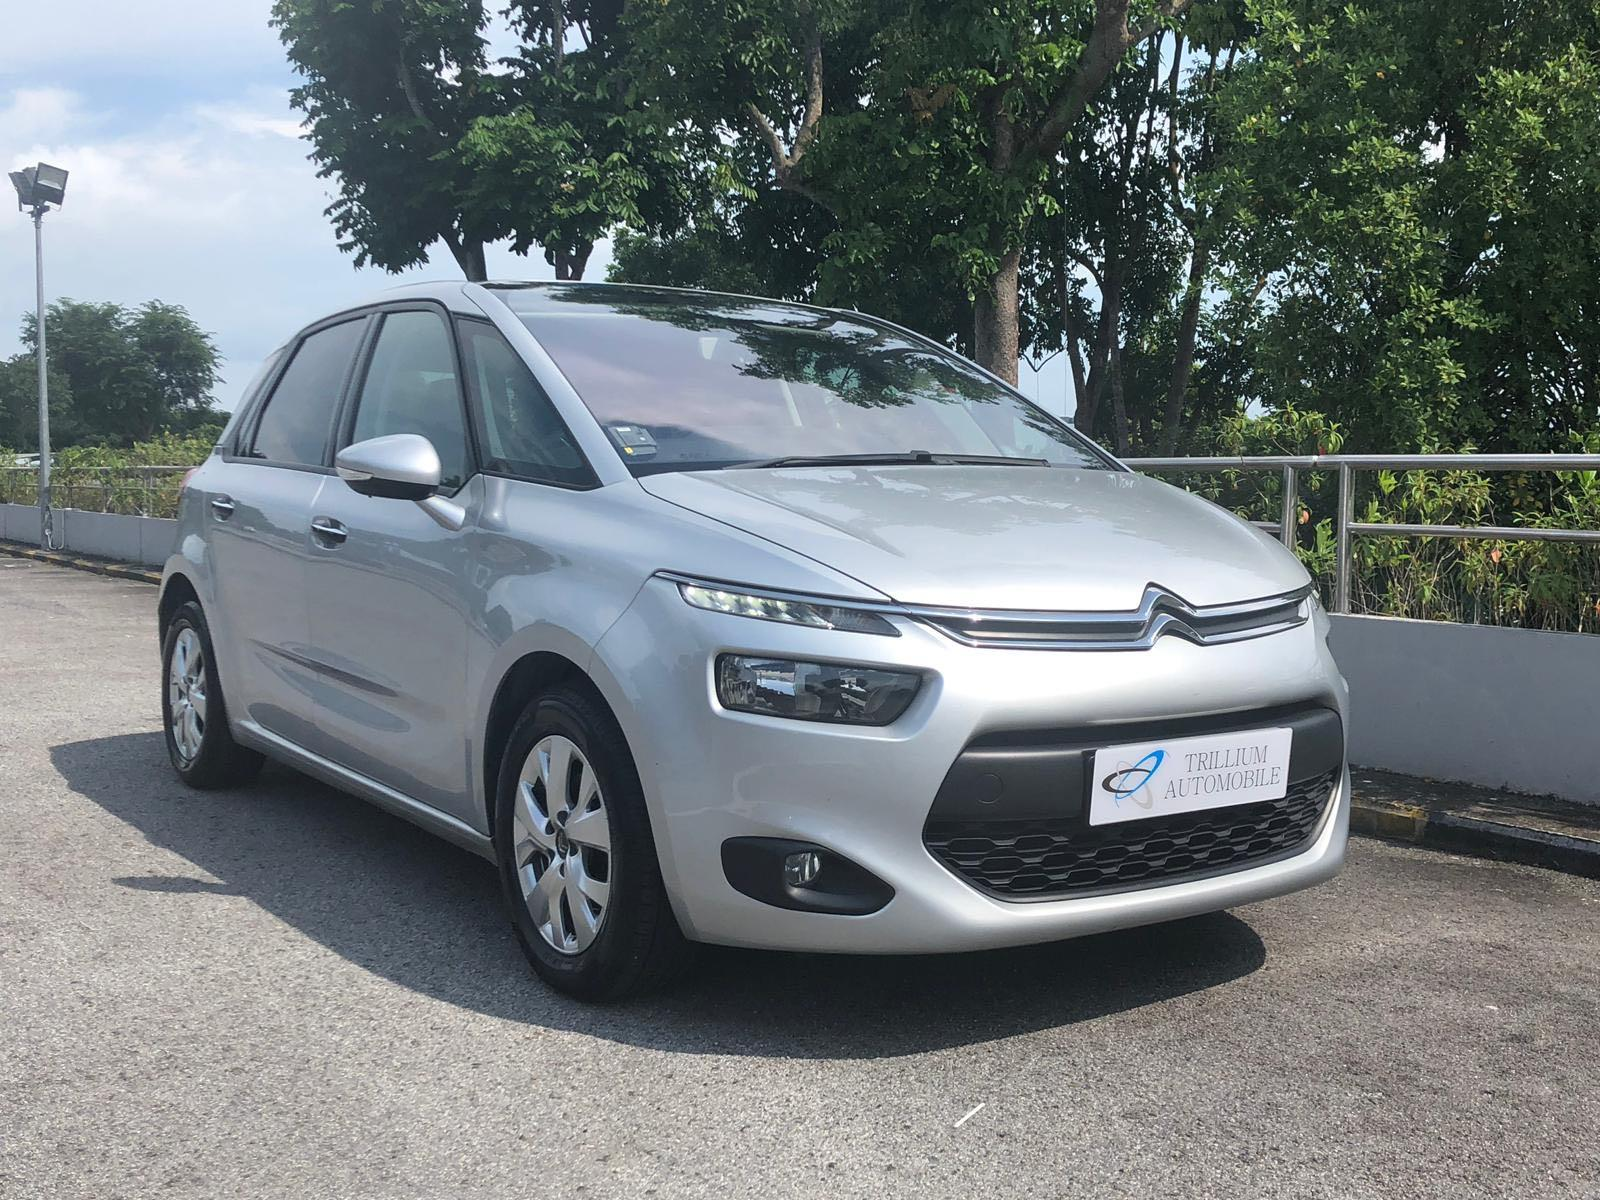 Citroen C4 Picasso Diesel for Rent!